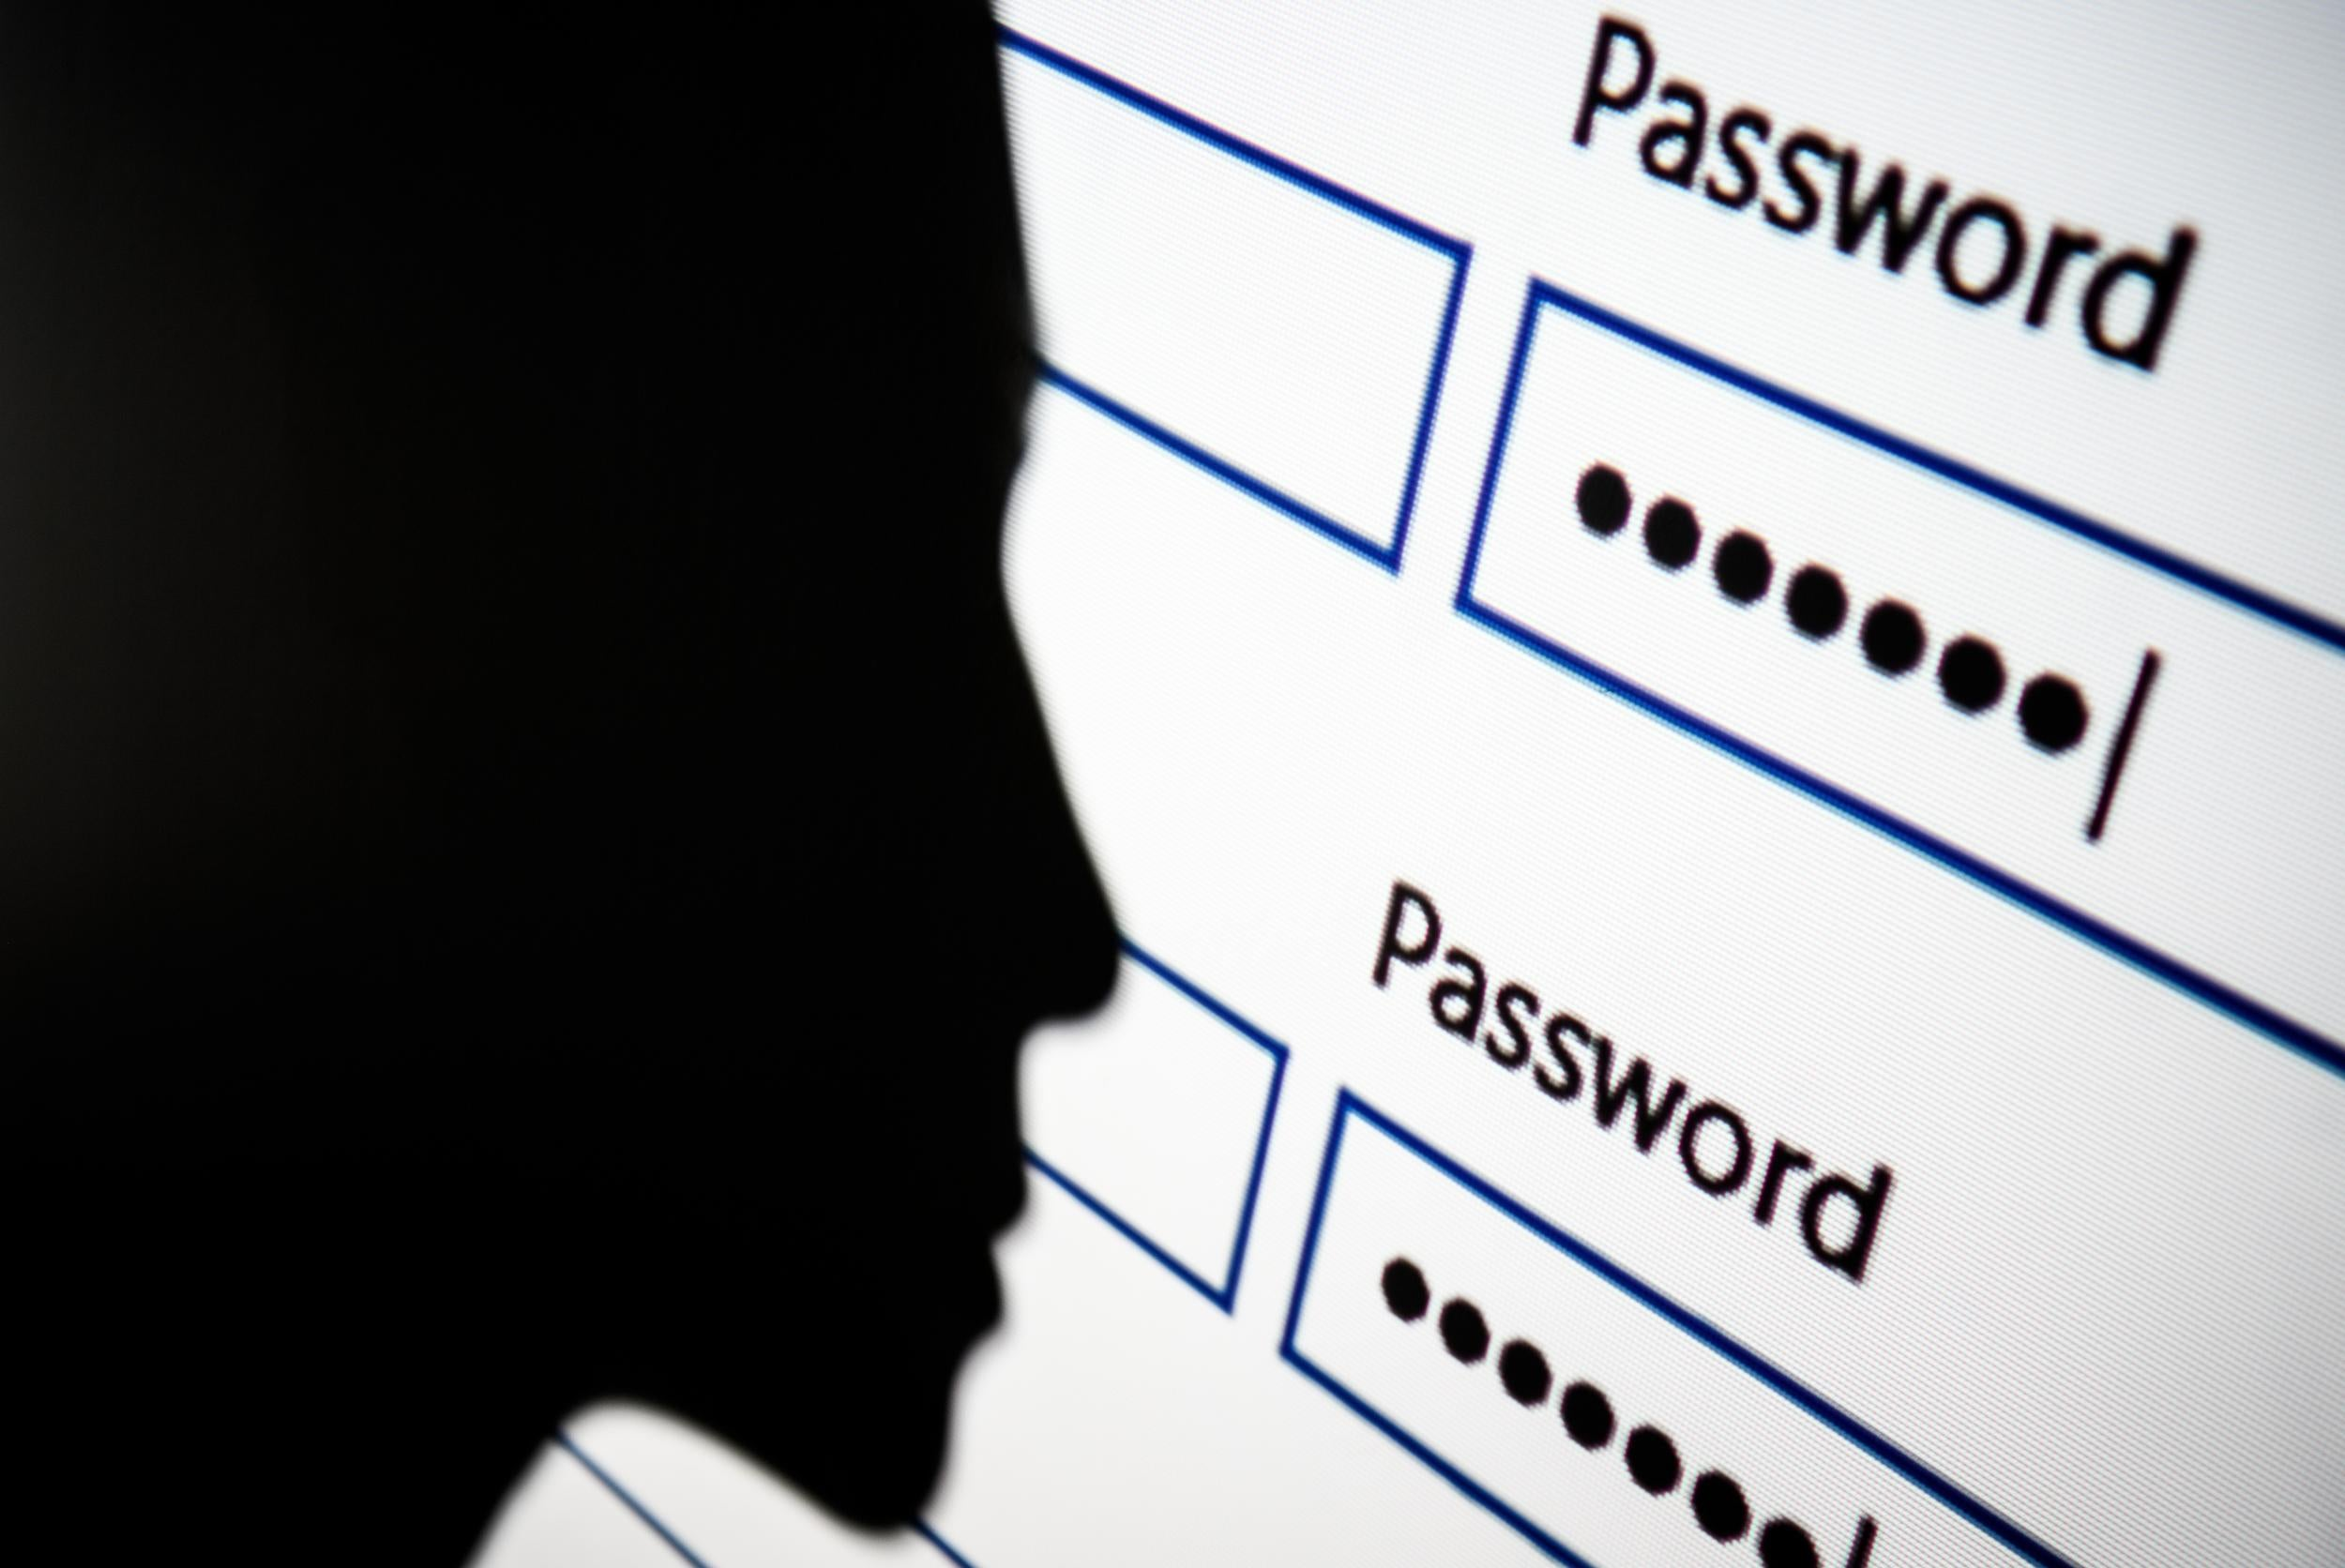 Huge data breach reveals hundreds of millions of emails and